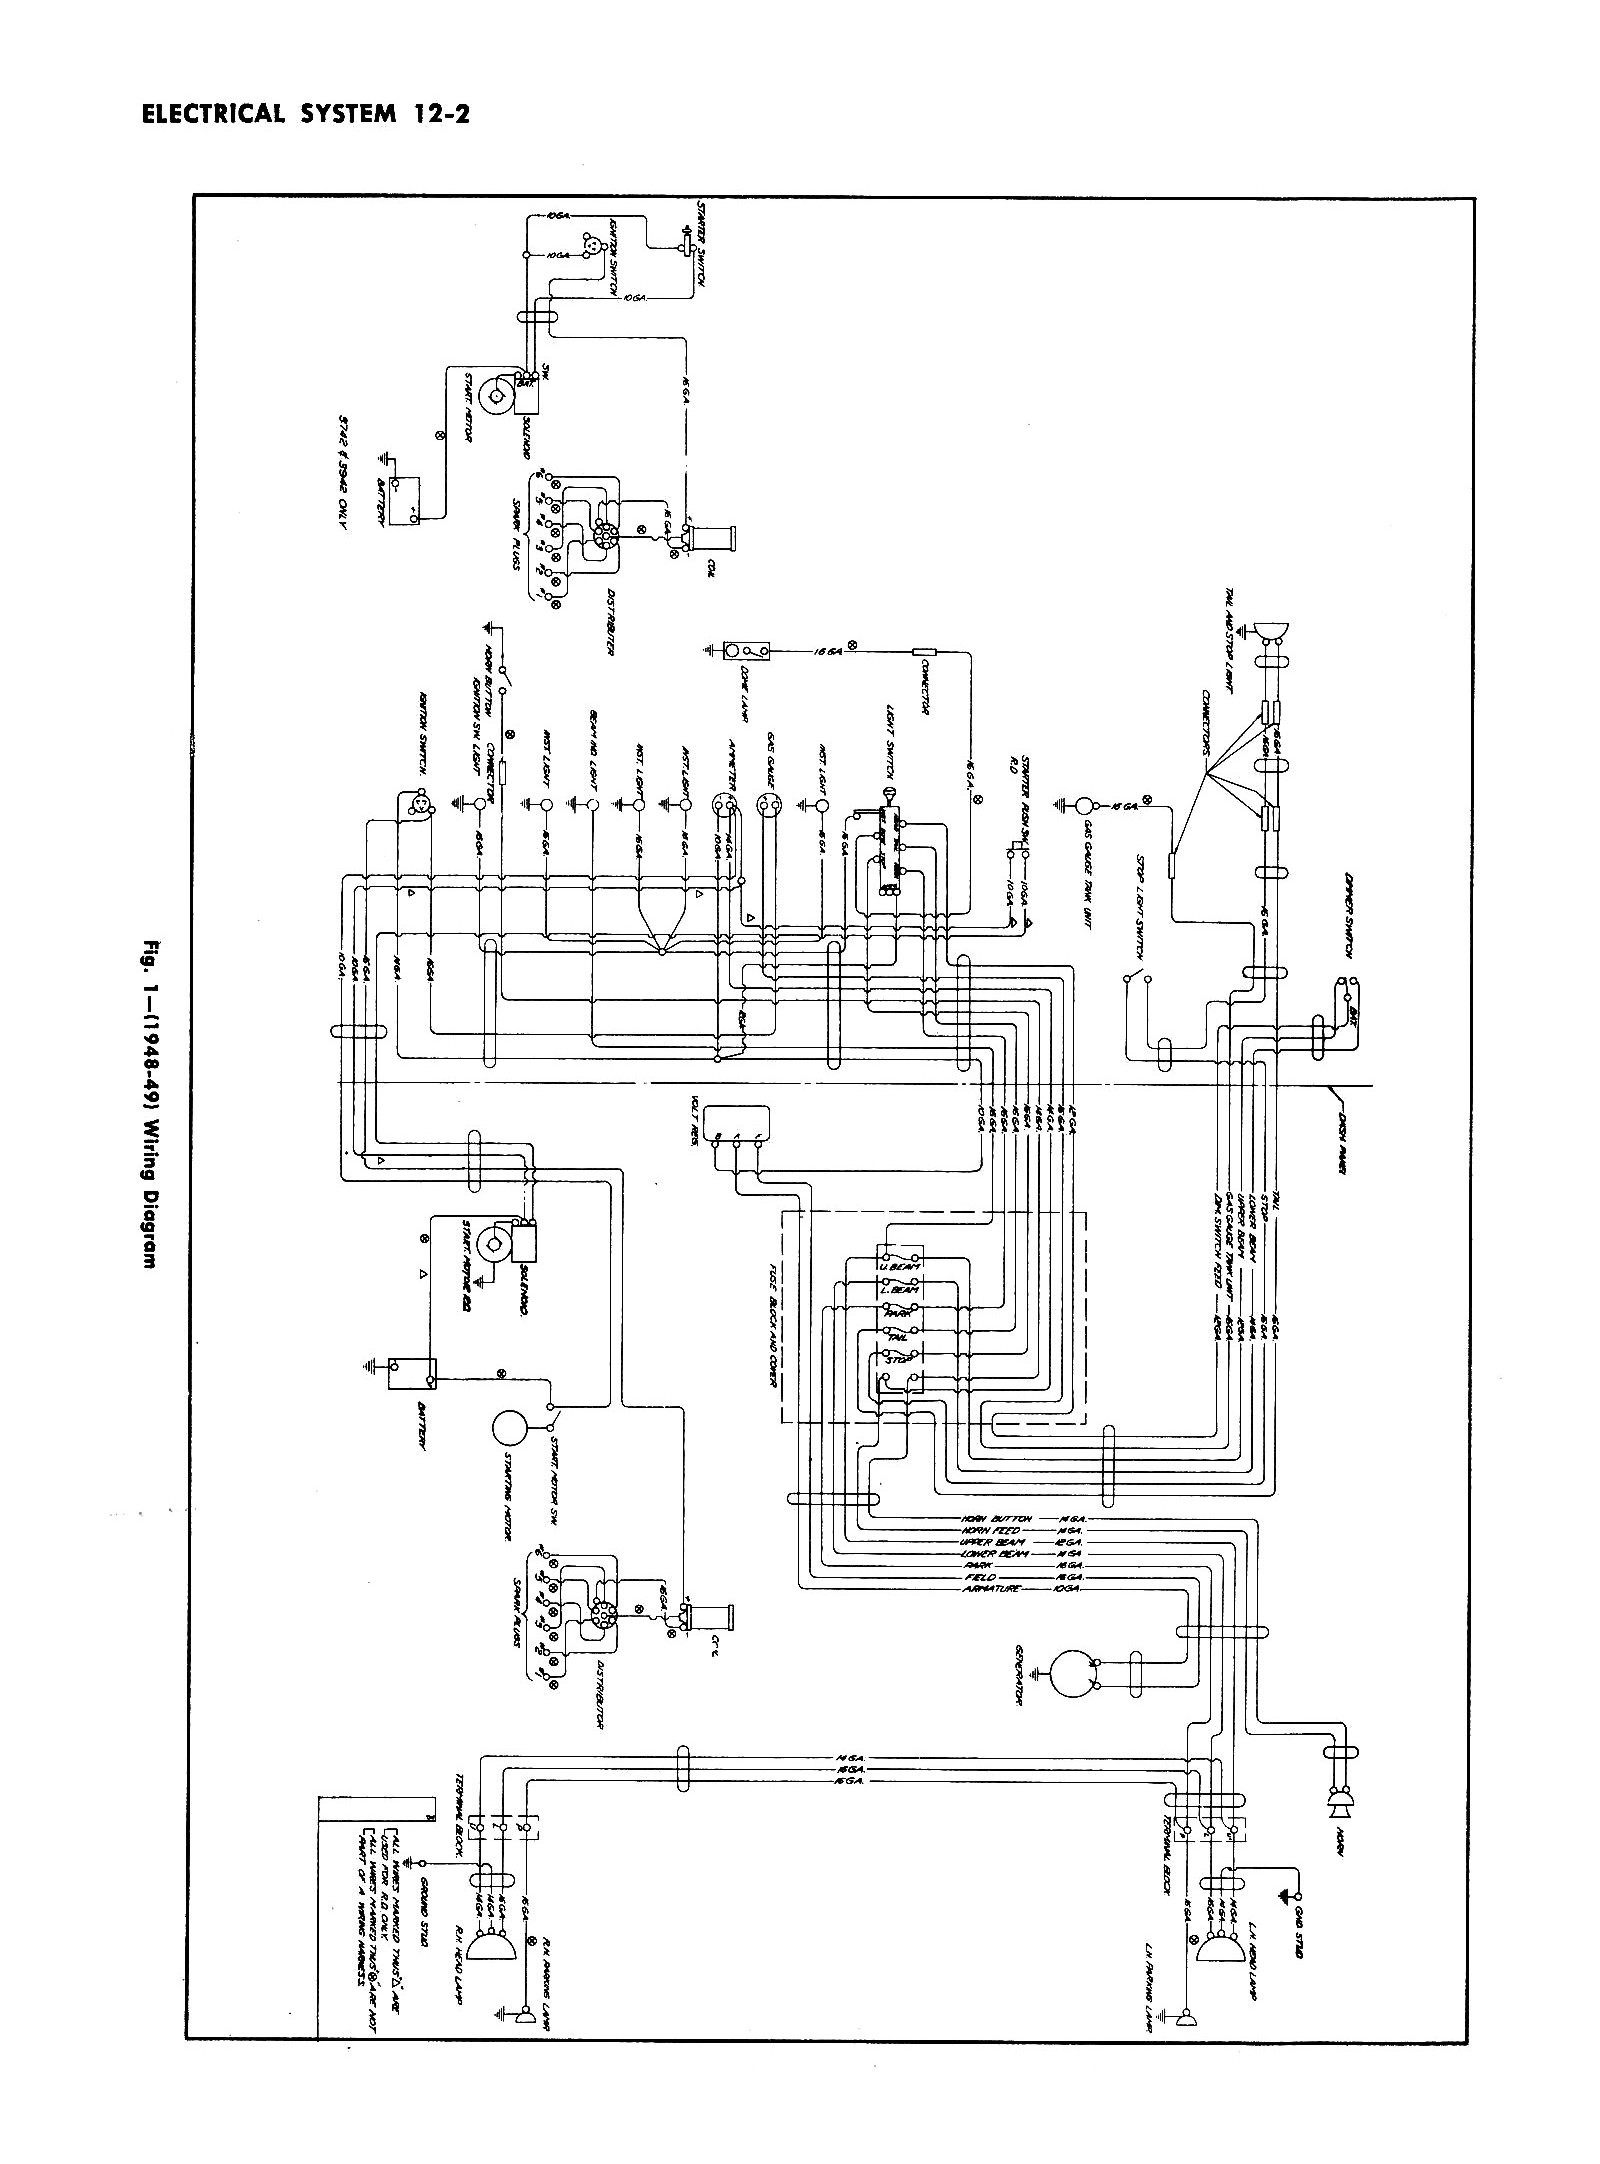 1949 chevrolet deluxe wiring diagram trusted wiring diagram u2022 rh soulmatestyle co 1949 chevy truck wiring